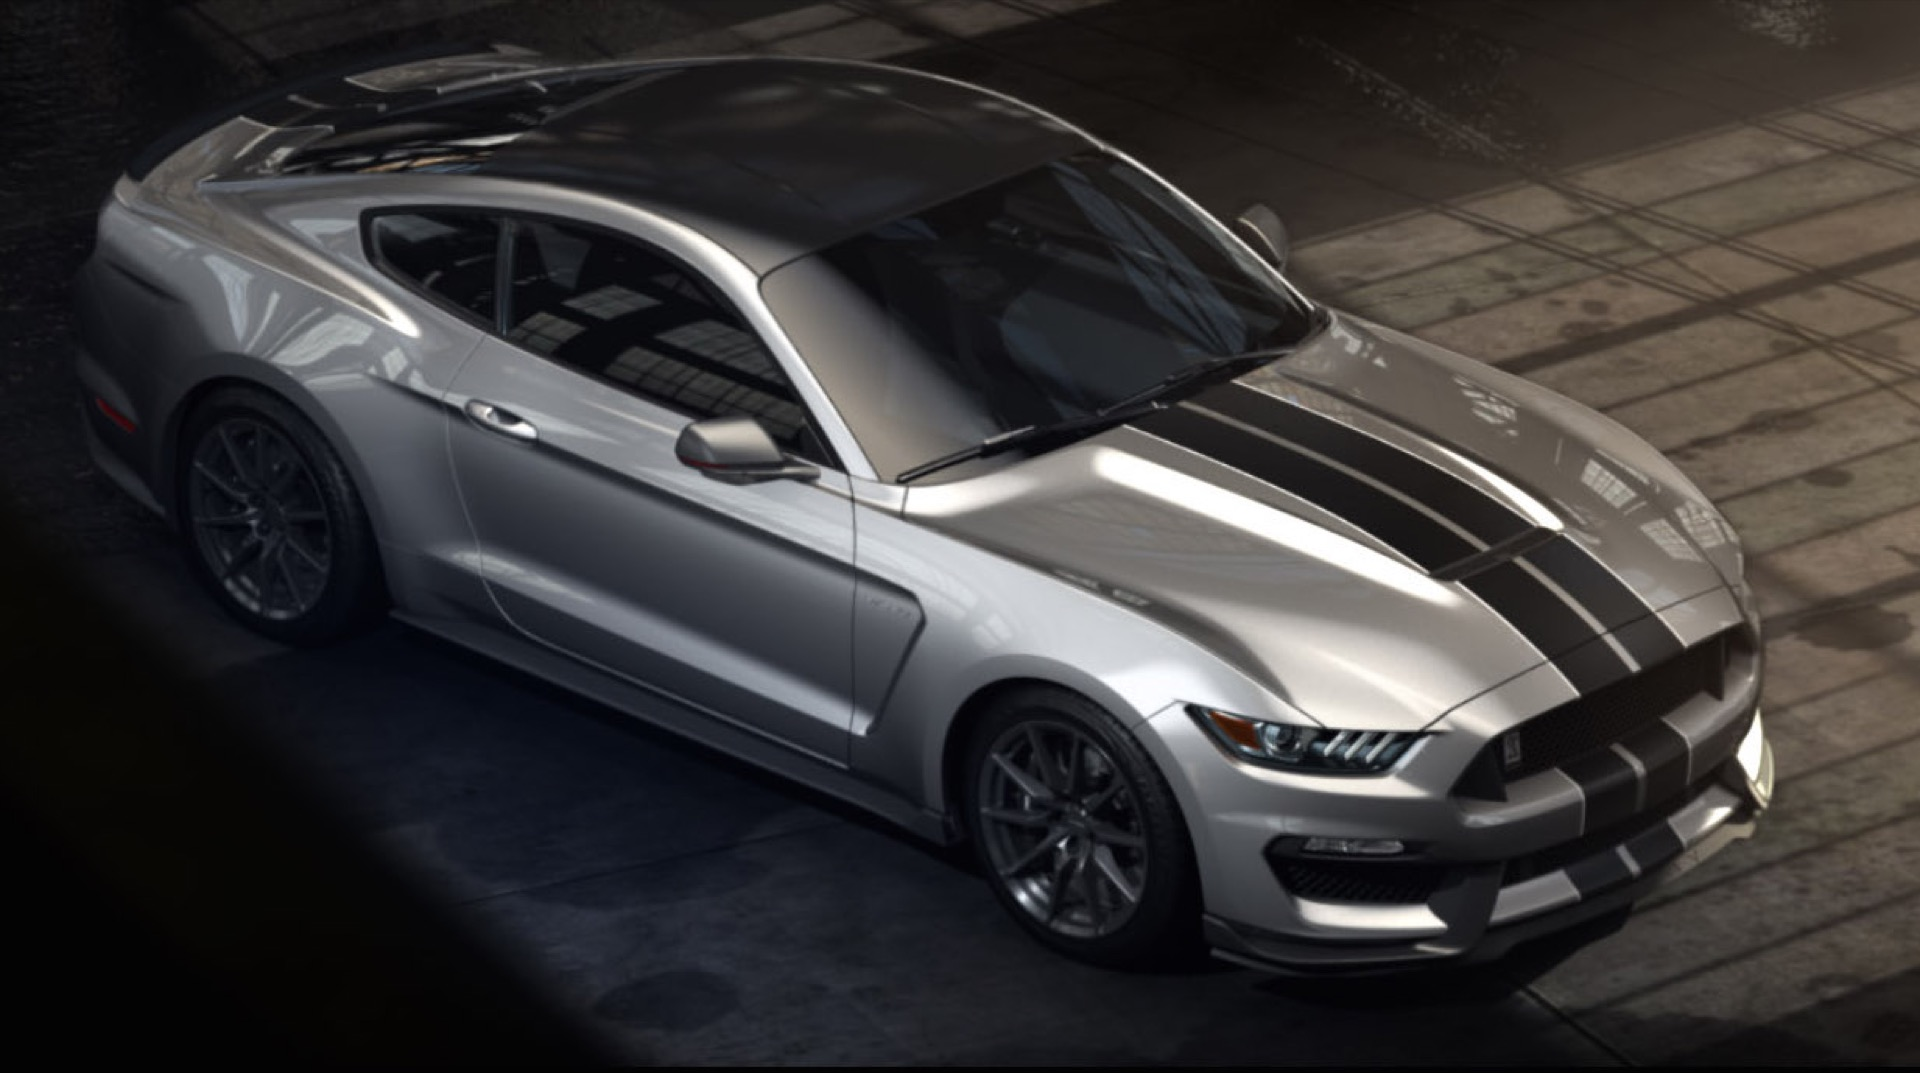 Shelby gt350 based on ford mustang news r version revealed page 2 acurazine acura enthusiast community